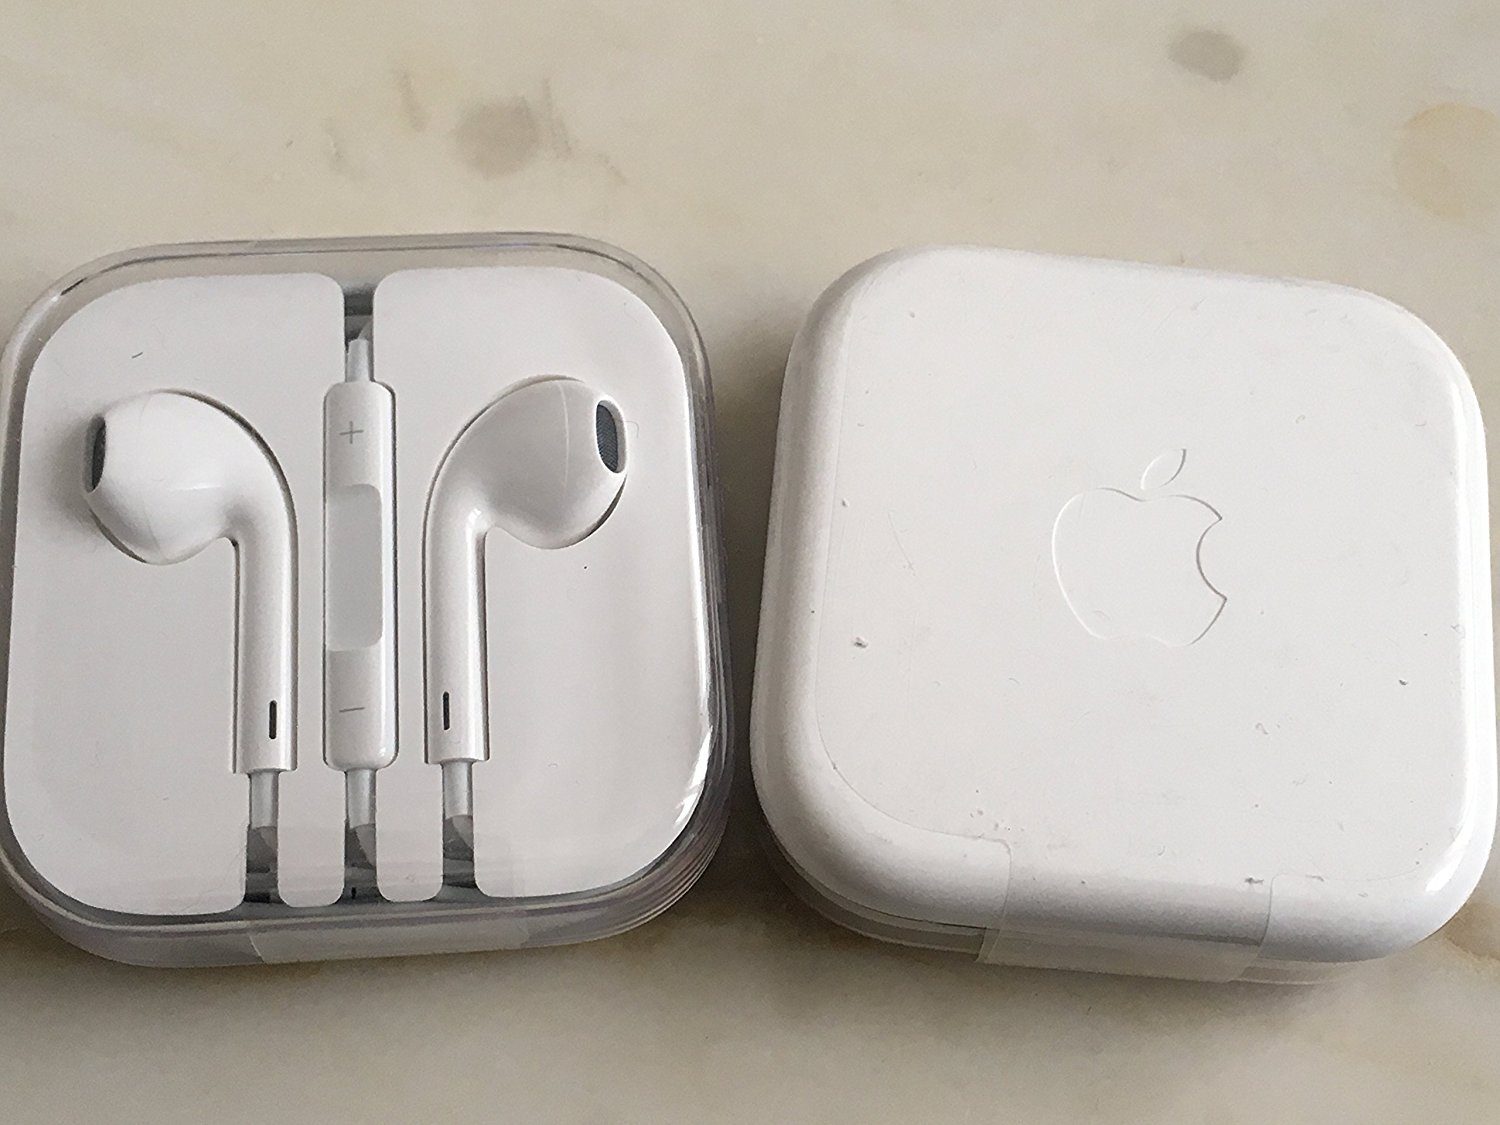 Apple Auriculares Originales iPhone 5, 5S, 5C, 6, 6 Plus, 6S, 6S Plus, iPad Air 4 5 6, iPad 1 2 3 4, MD827ZM/A MD827, Blanco